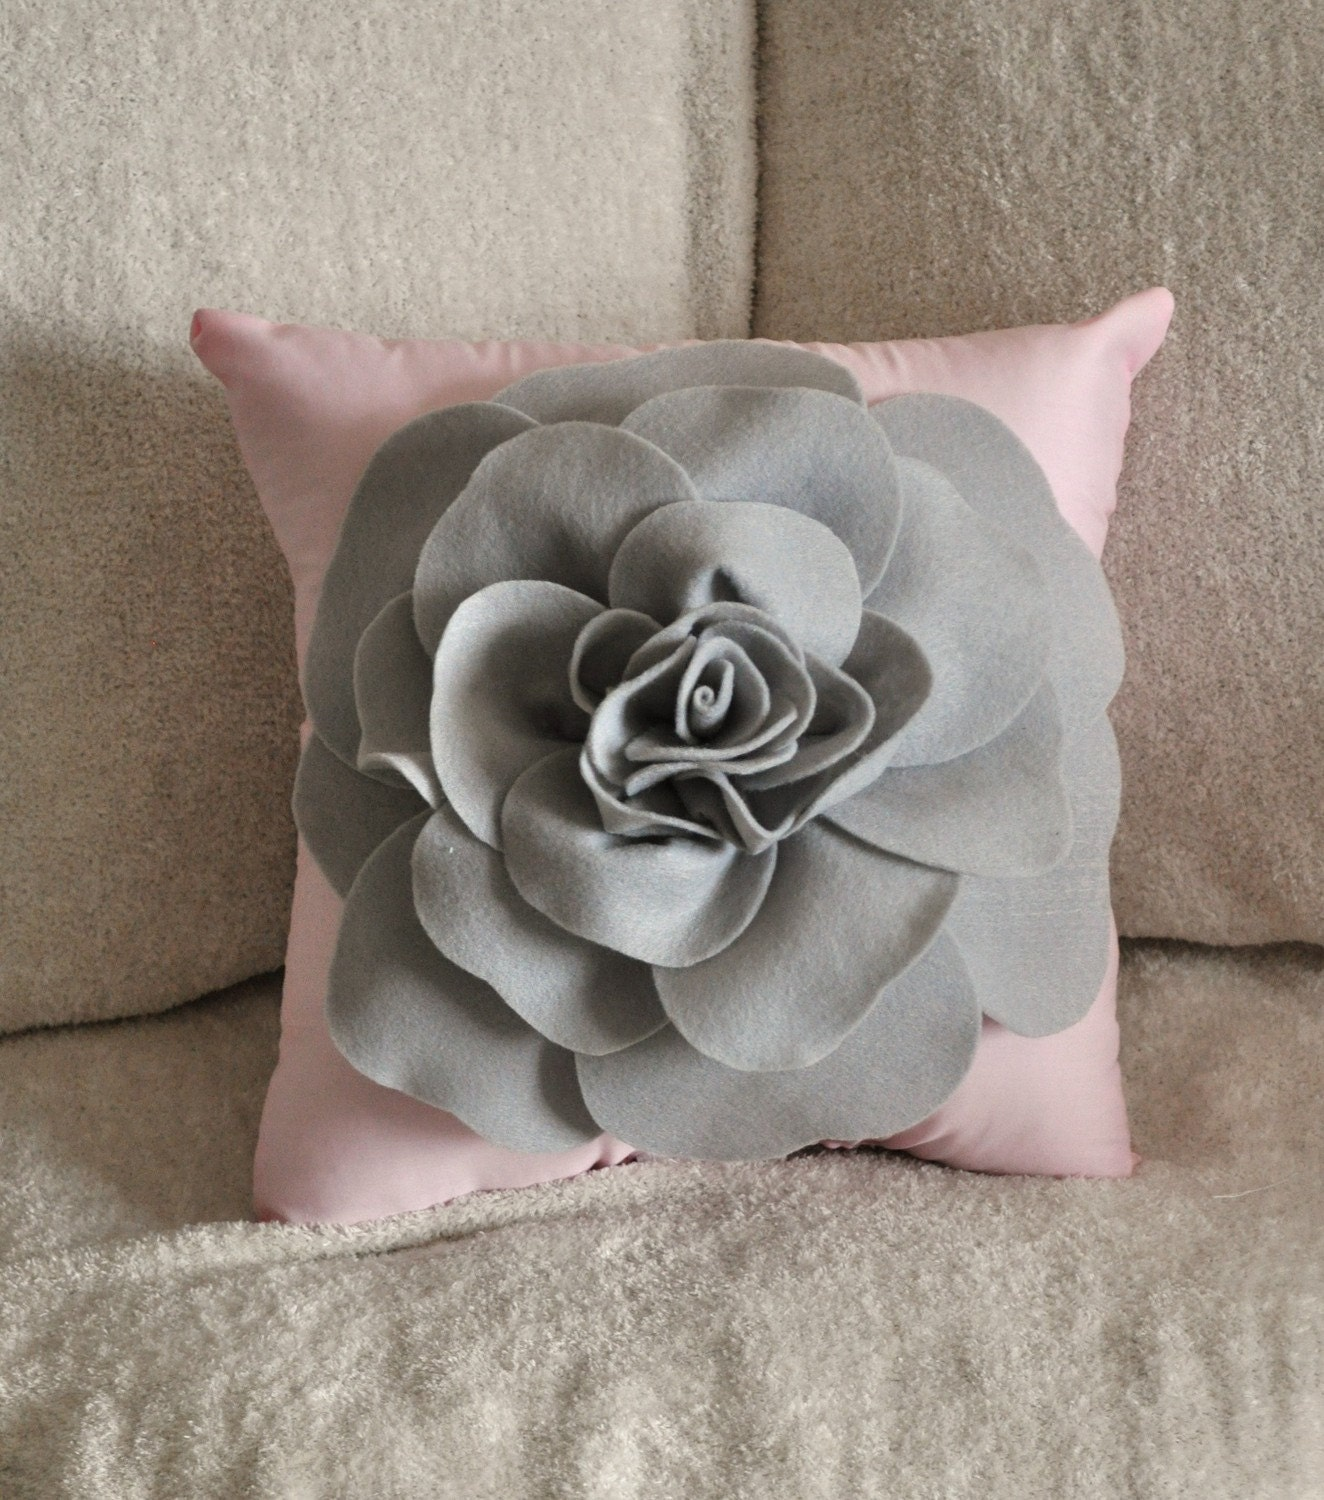 Grey And Pink Decorative Pillows : Pillows Light Grey Rose on Light Pink Pillow 14x14 by bedbuggs